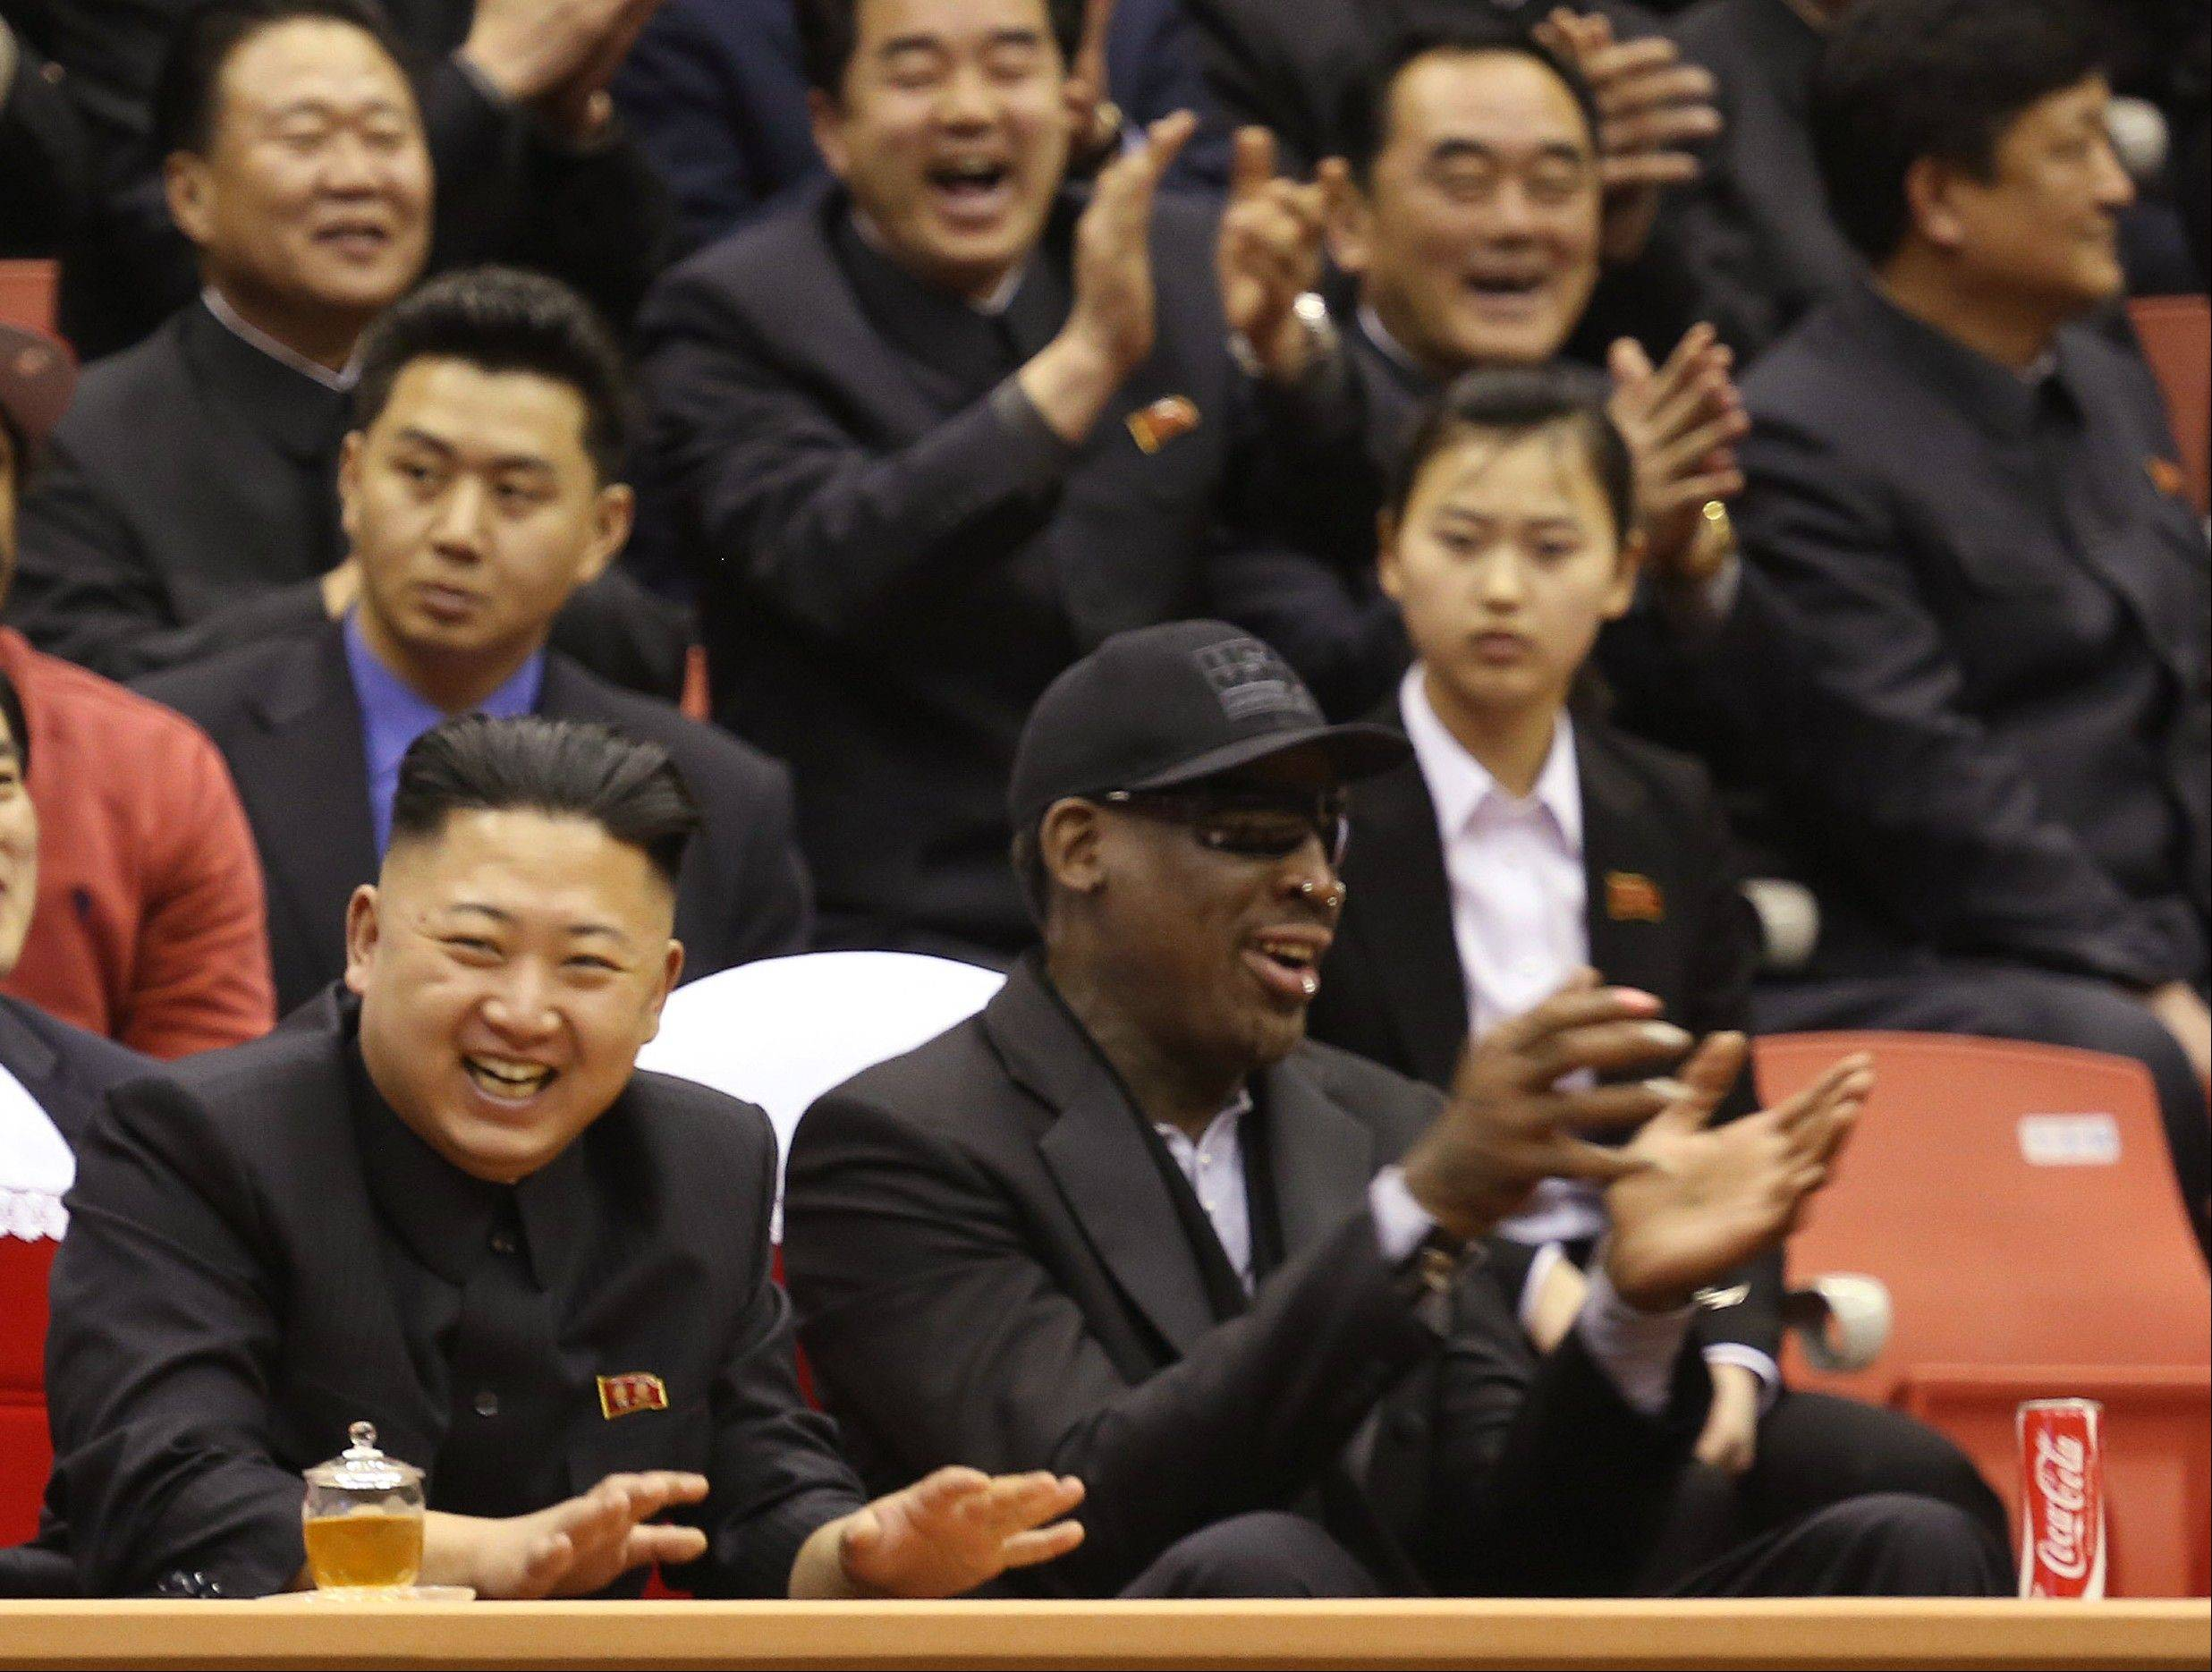 ASSOCIATED PRESS North Korean leader Kim Jong Un, left, and former NBA star Dennis Rodman watch North Korean and U.S. players in an exhibition basketball game at an arena in Pyongyang, North Korea, Thursday. Rodman arrived in Pyongyang on Monday with three members of the Harlem Globetrotters basketball team to shoot an episode on North Korea for a new weekly HBO series.